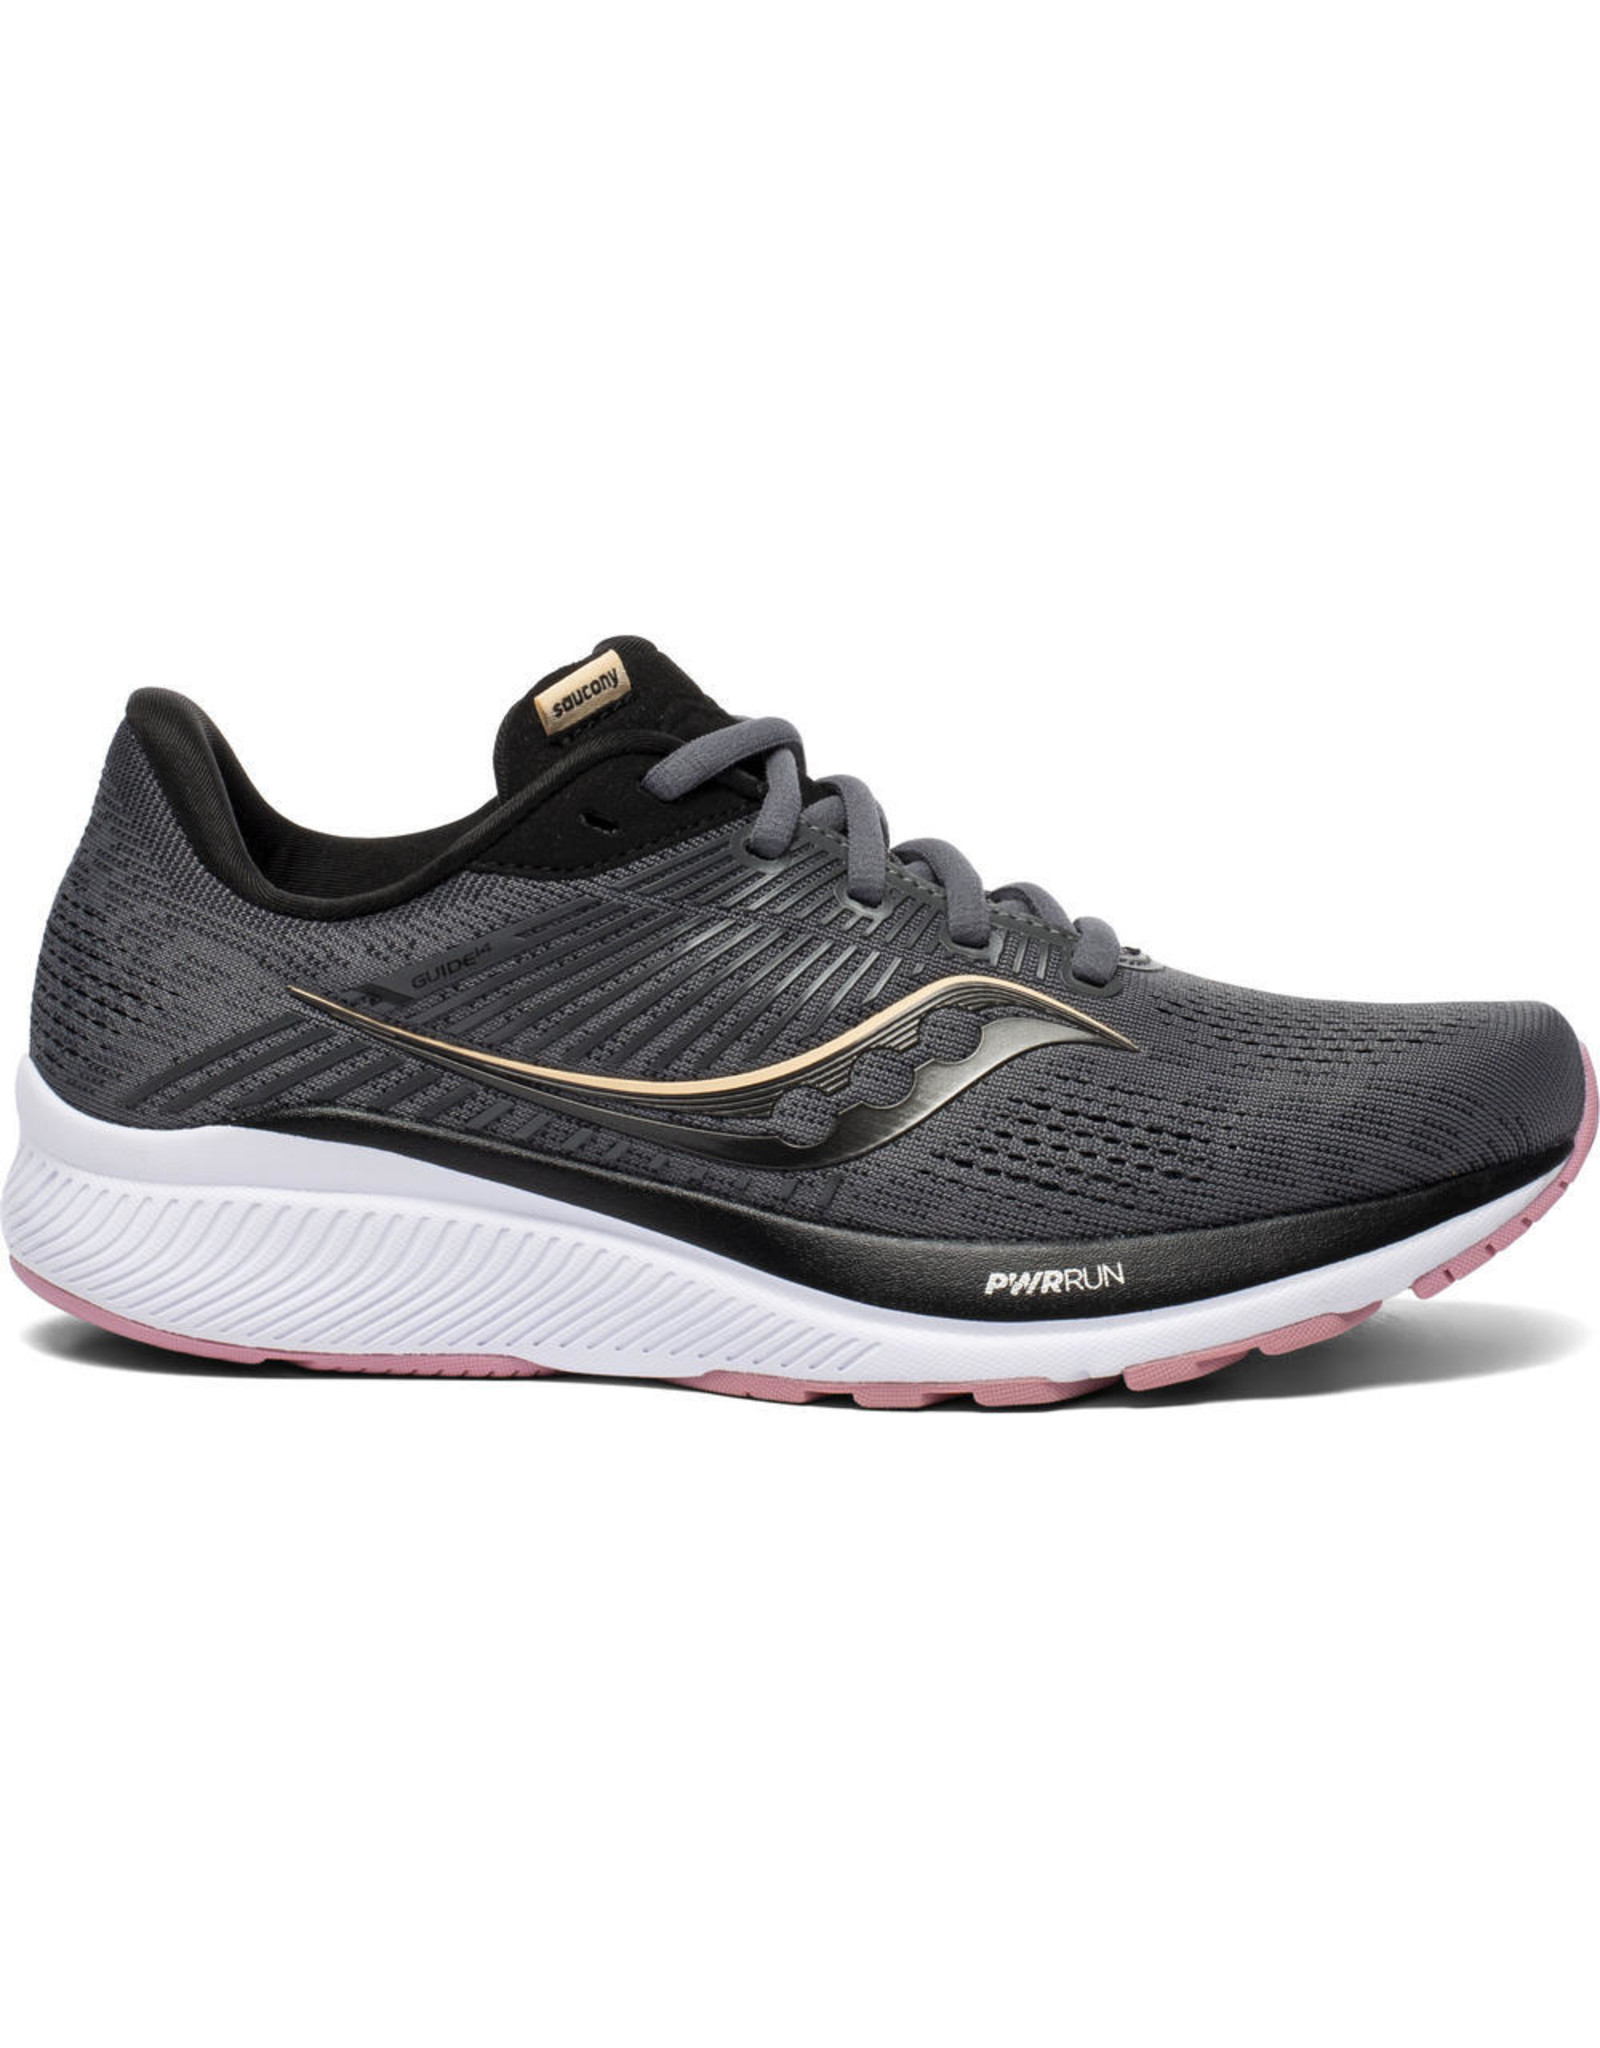 Saucony GUIDE 14 - CHARCOAL/ROSE-Dames